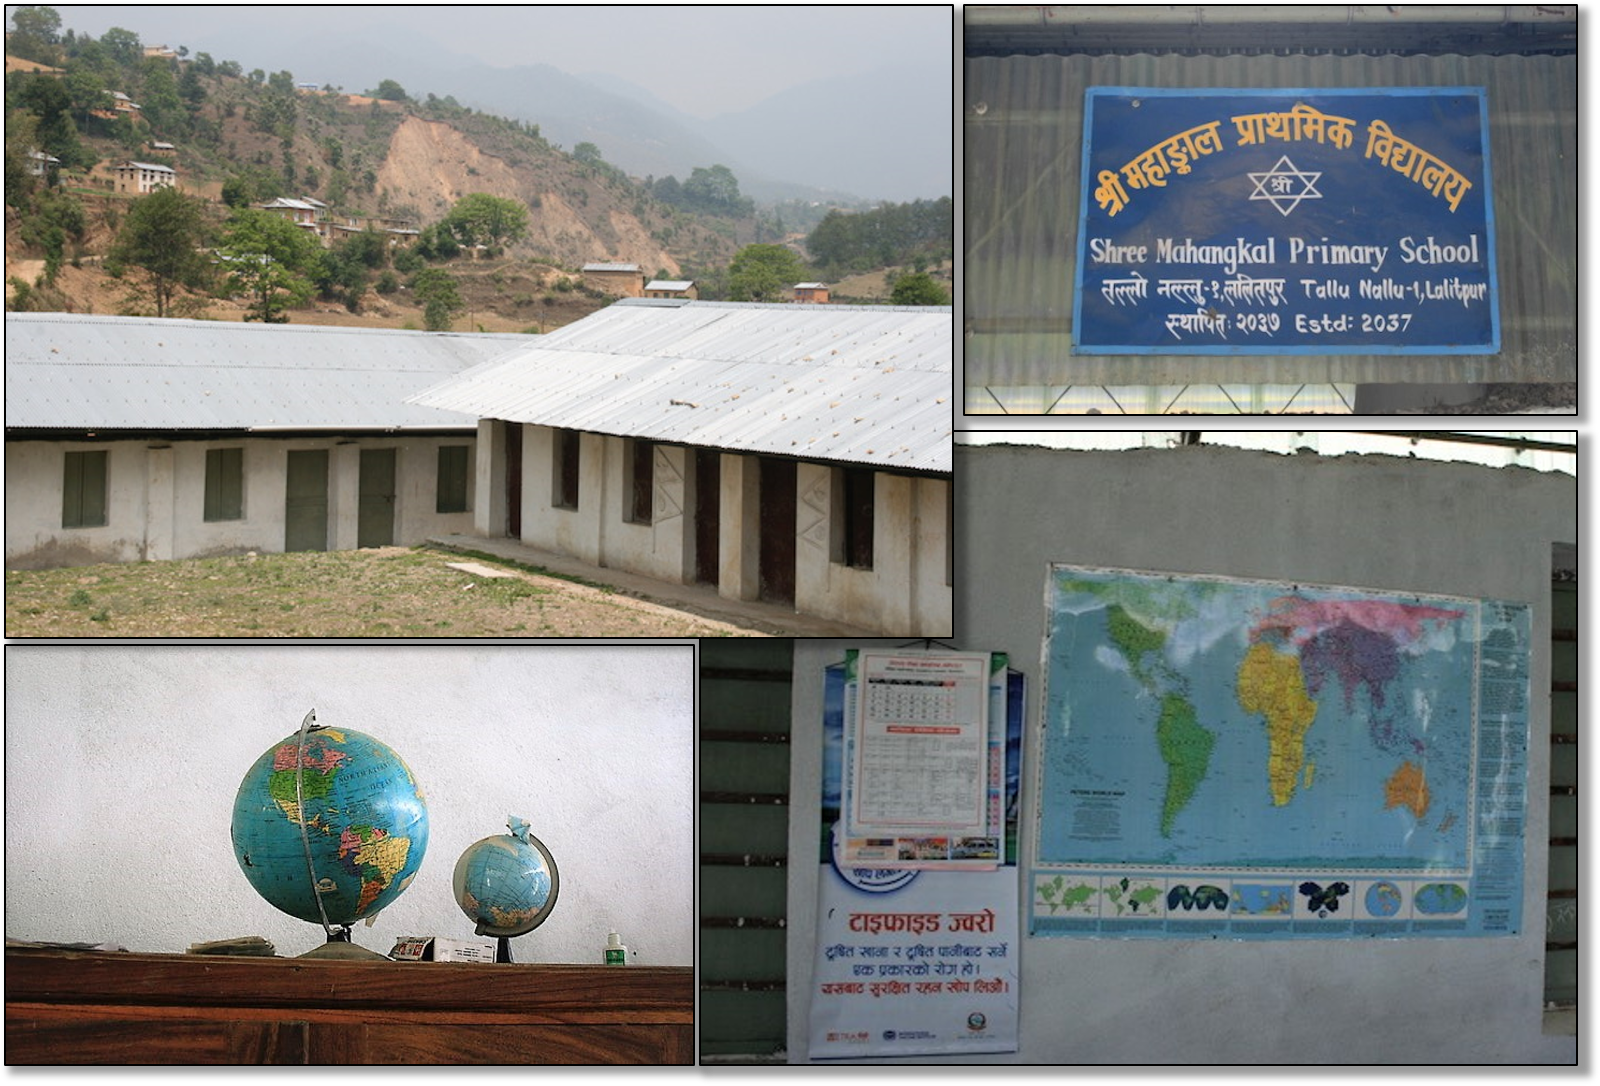 """""""Until 1998"""" writes Kirk Nepal, """"the small globe was the only one the school had."""" The larger, more up-to-date globe demonstrates the desire to connect with the real world, and is now complemented by the large-format Peters map proudly displayed at the school   ."""